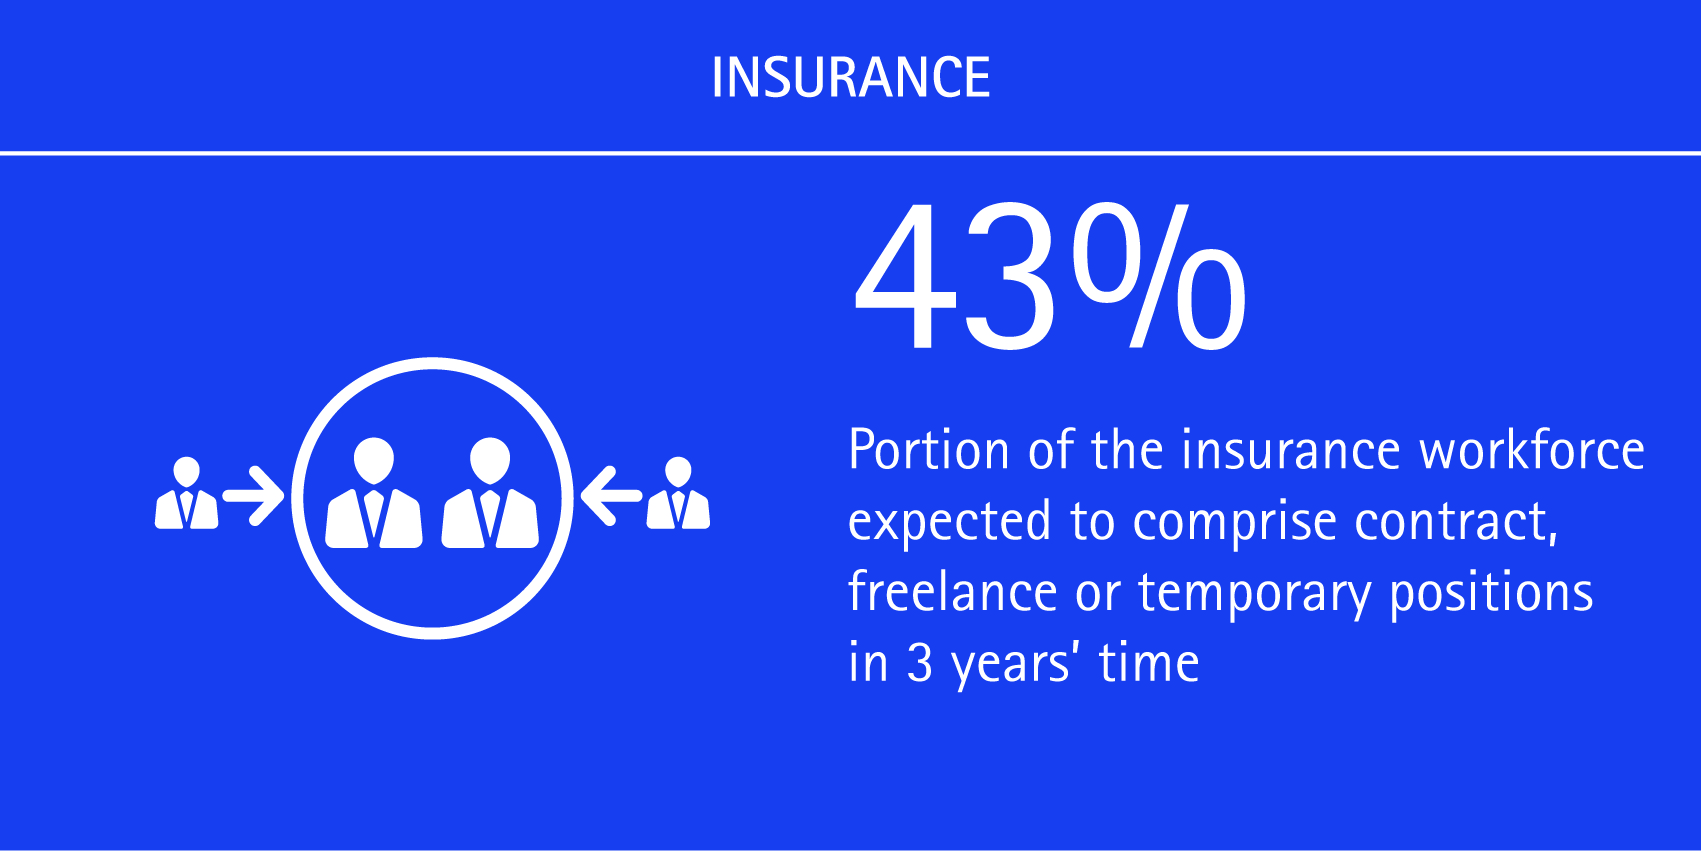 43% of the insurance workforce expected to comprise contract, freelance or temporary positions in 3 years' time